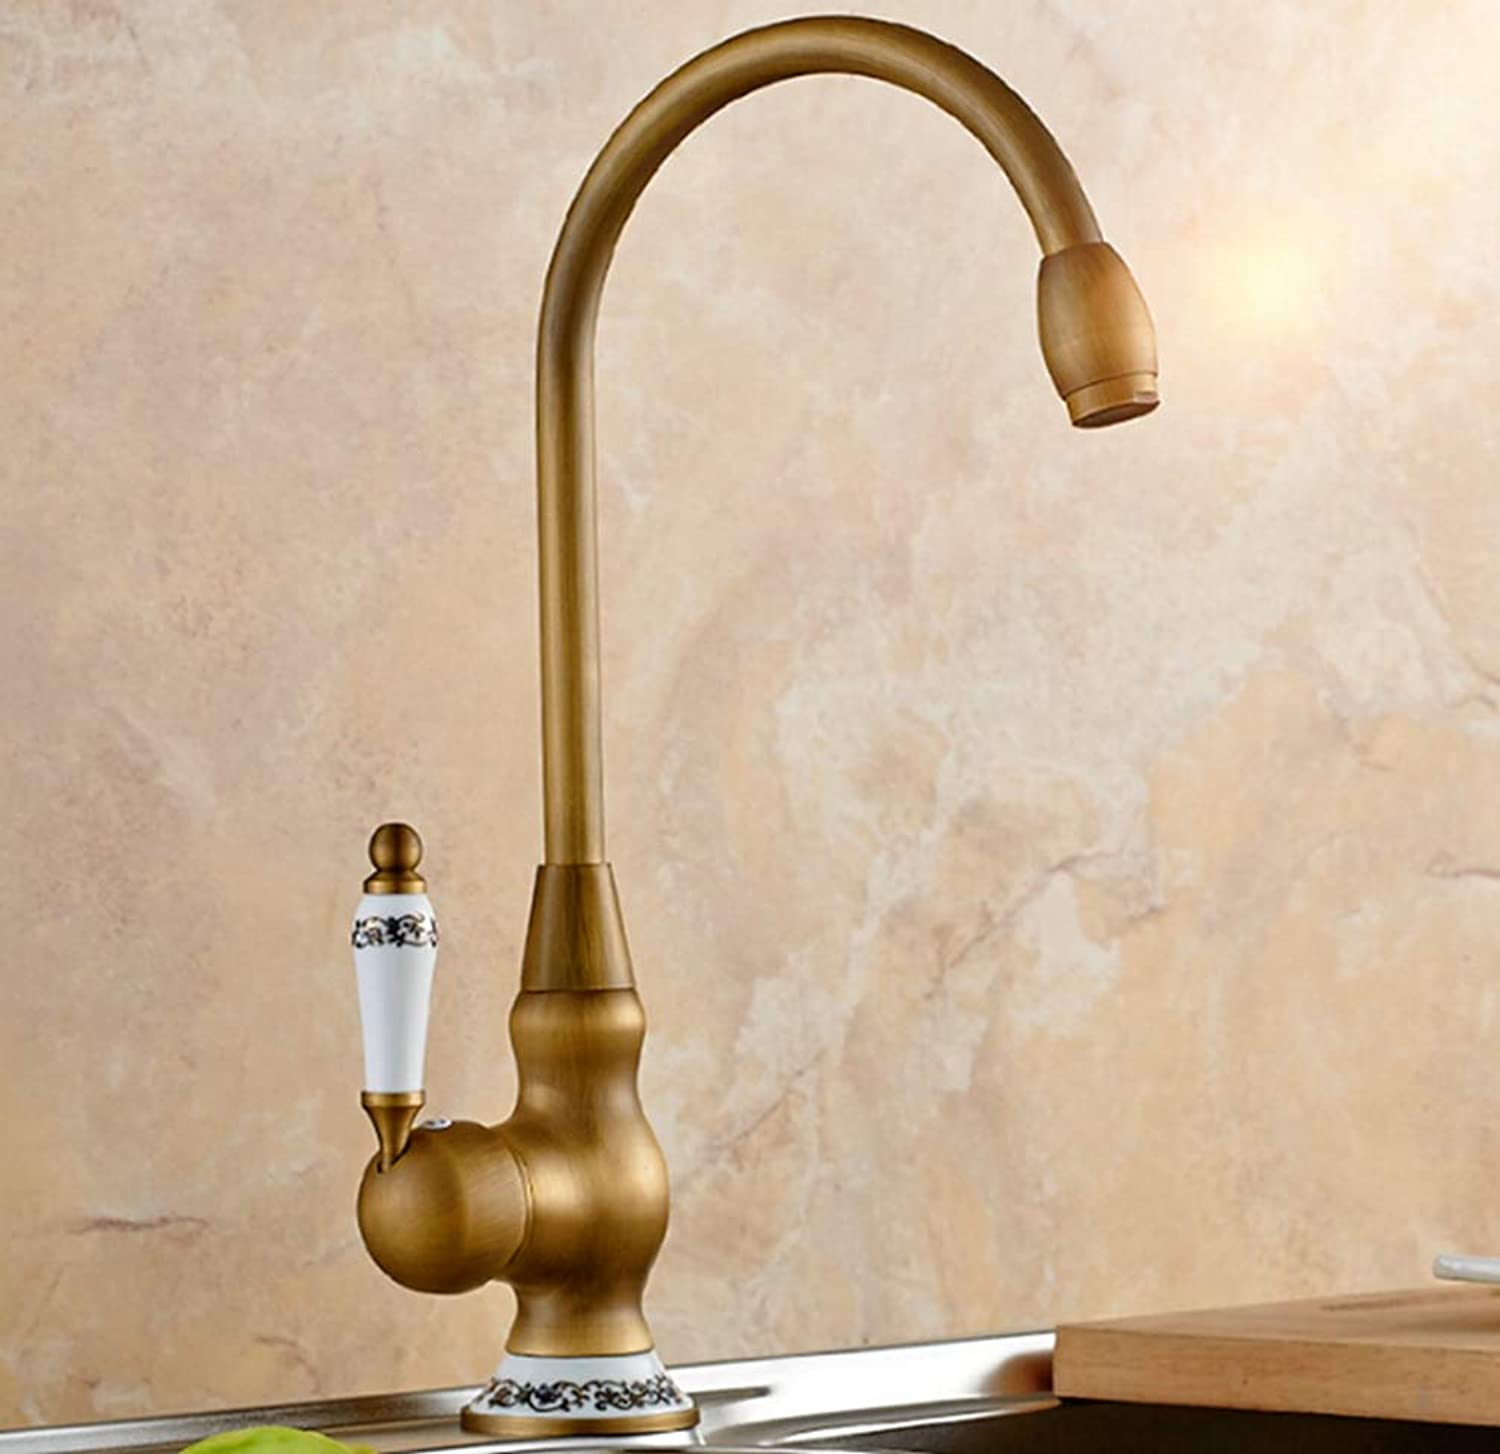 FZHLR Vintage Antique Brass Sink Faucet for Kitchen & Bathroom Kitchen Faucet with Ceramic Handle Water Tap